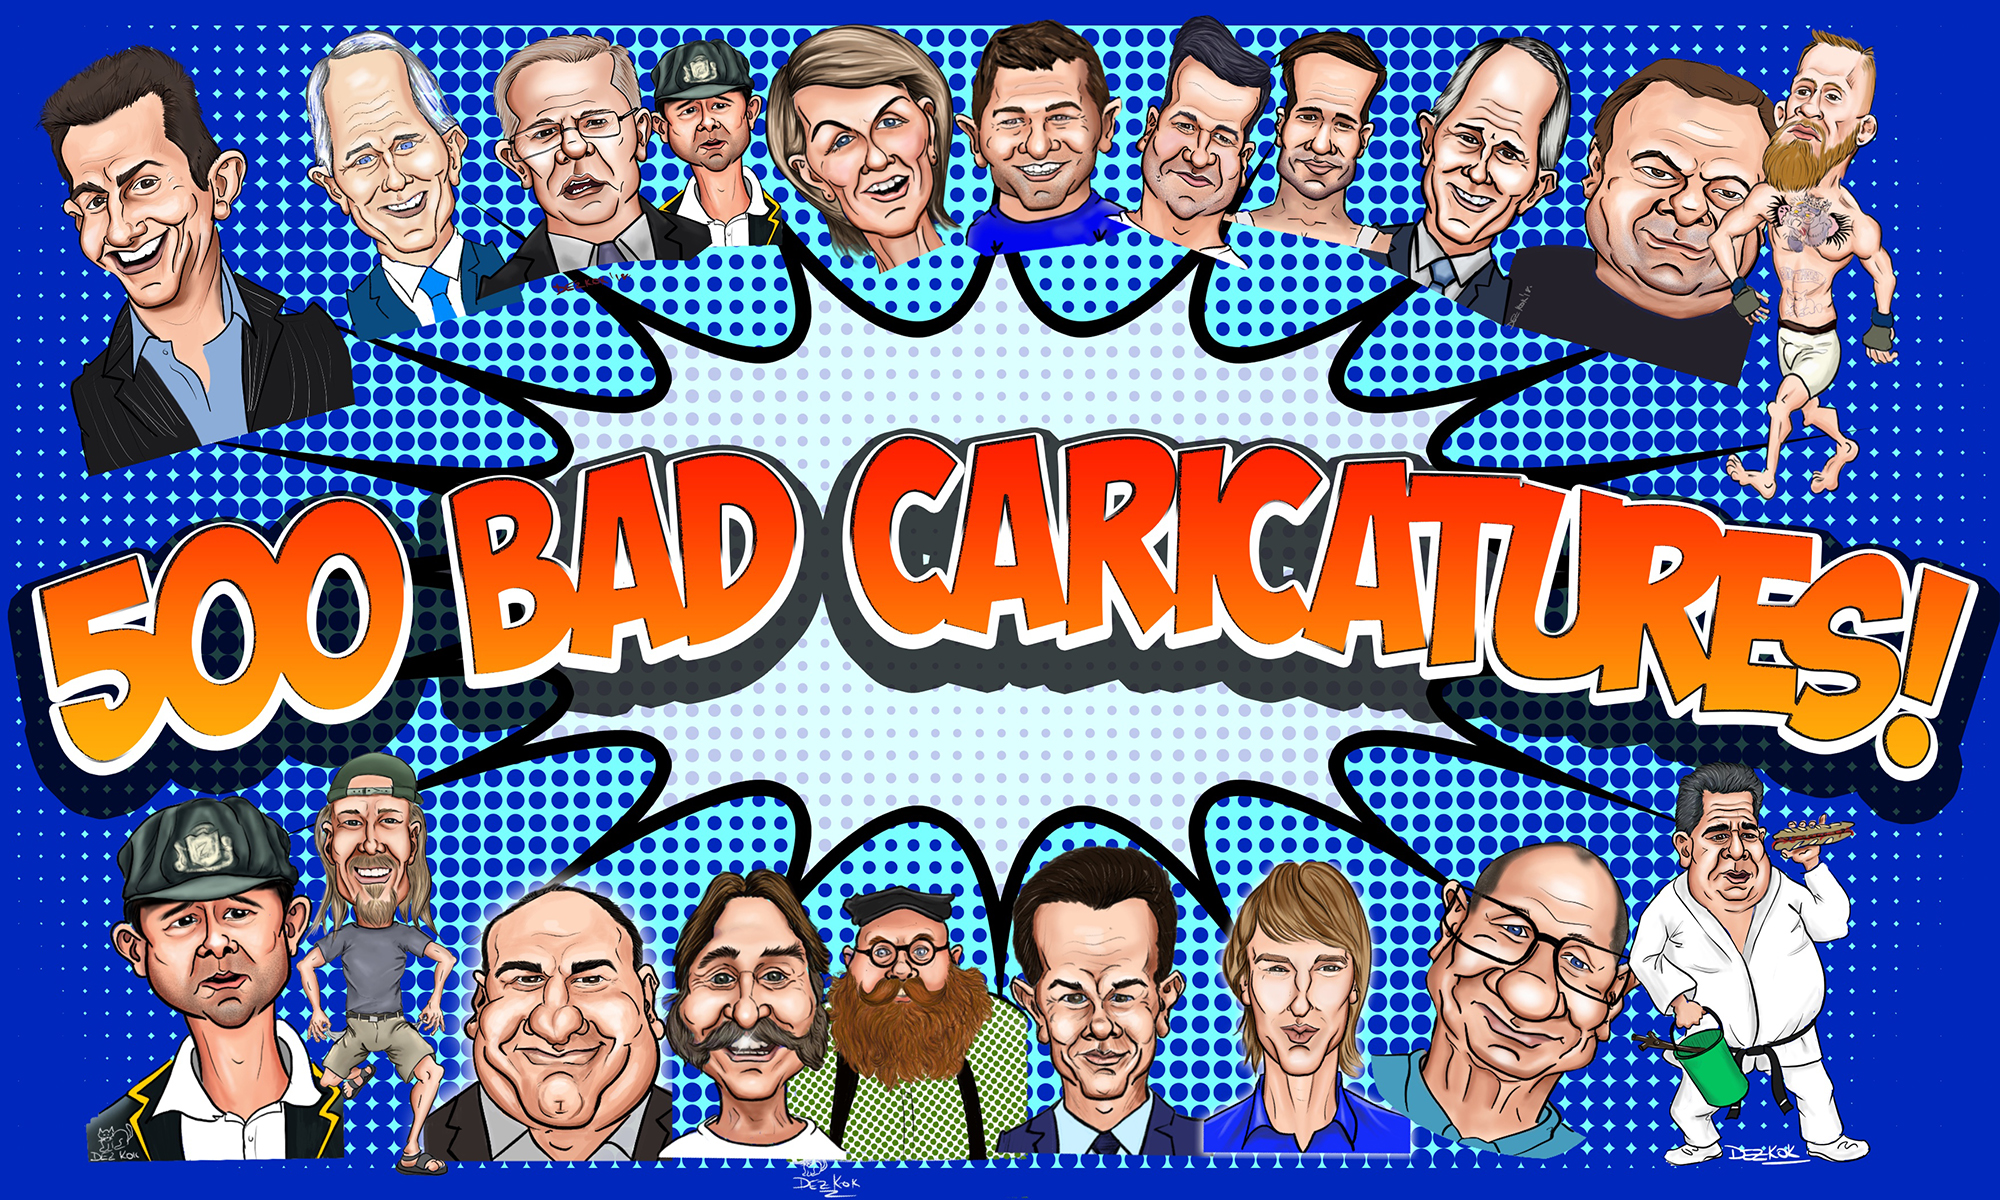 500 Bad Caricatures